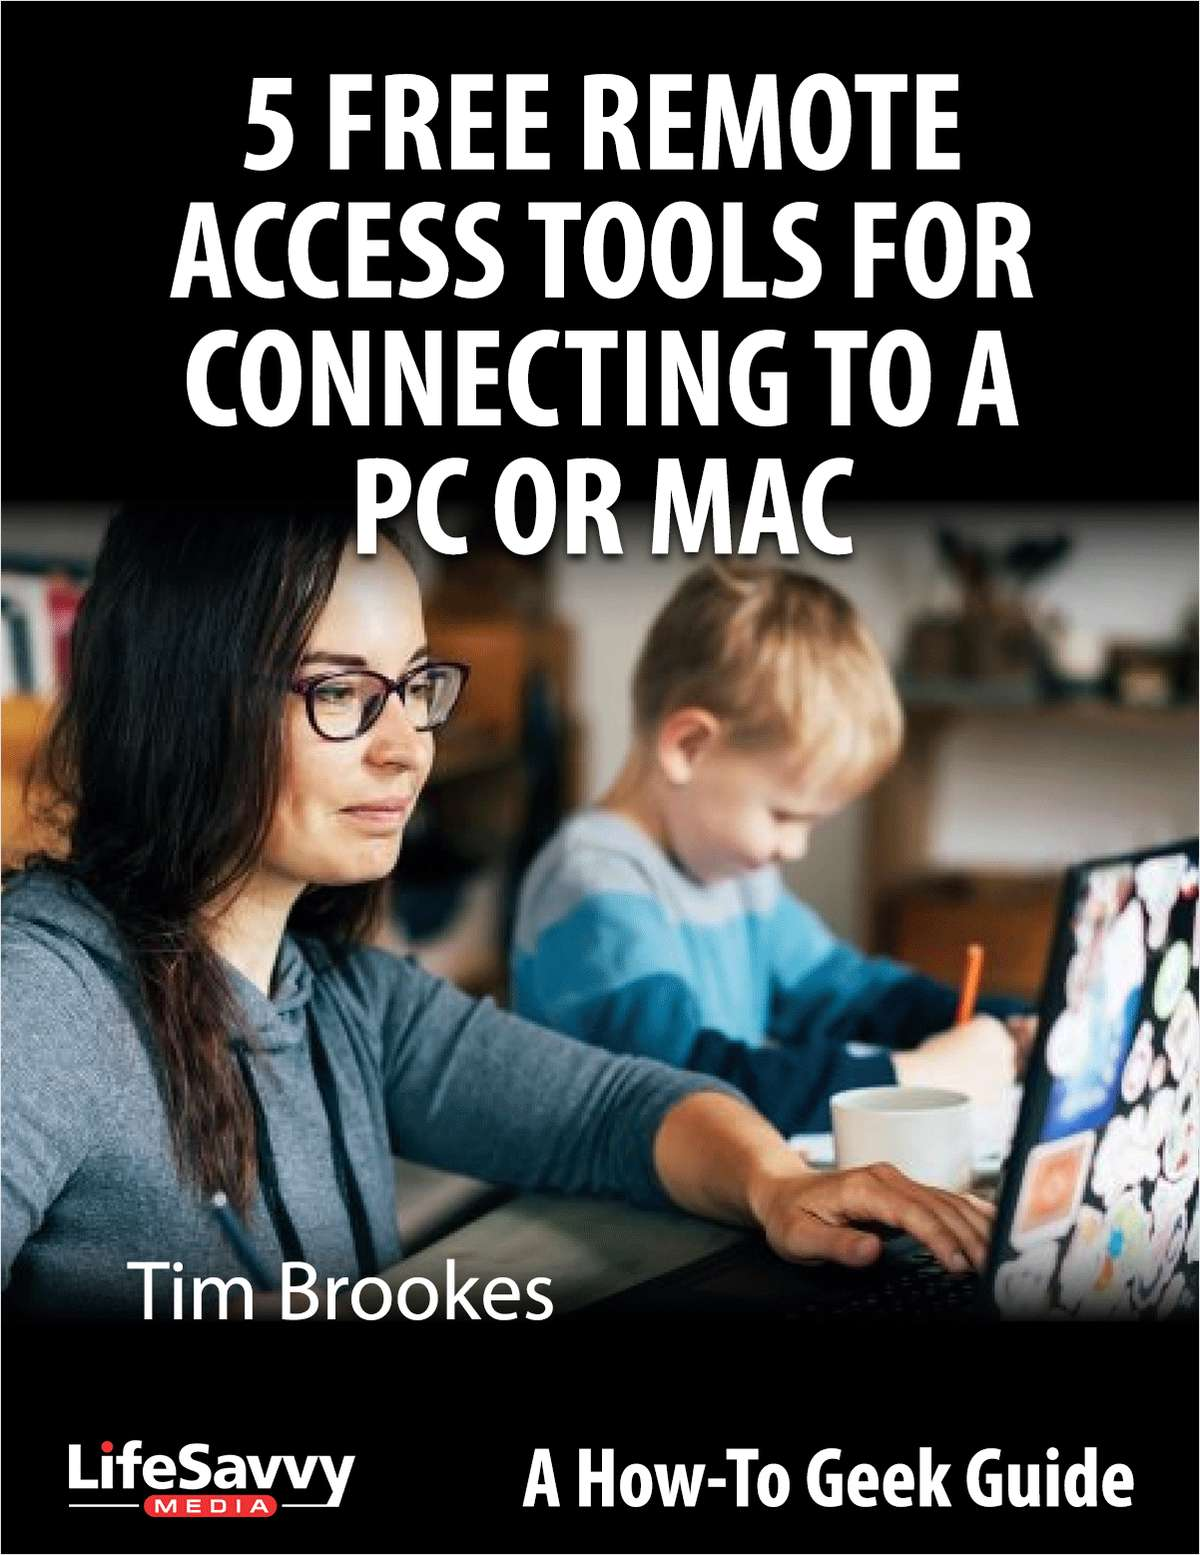 5 Free Remote Access Tools for Connecting to a PC or Mac